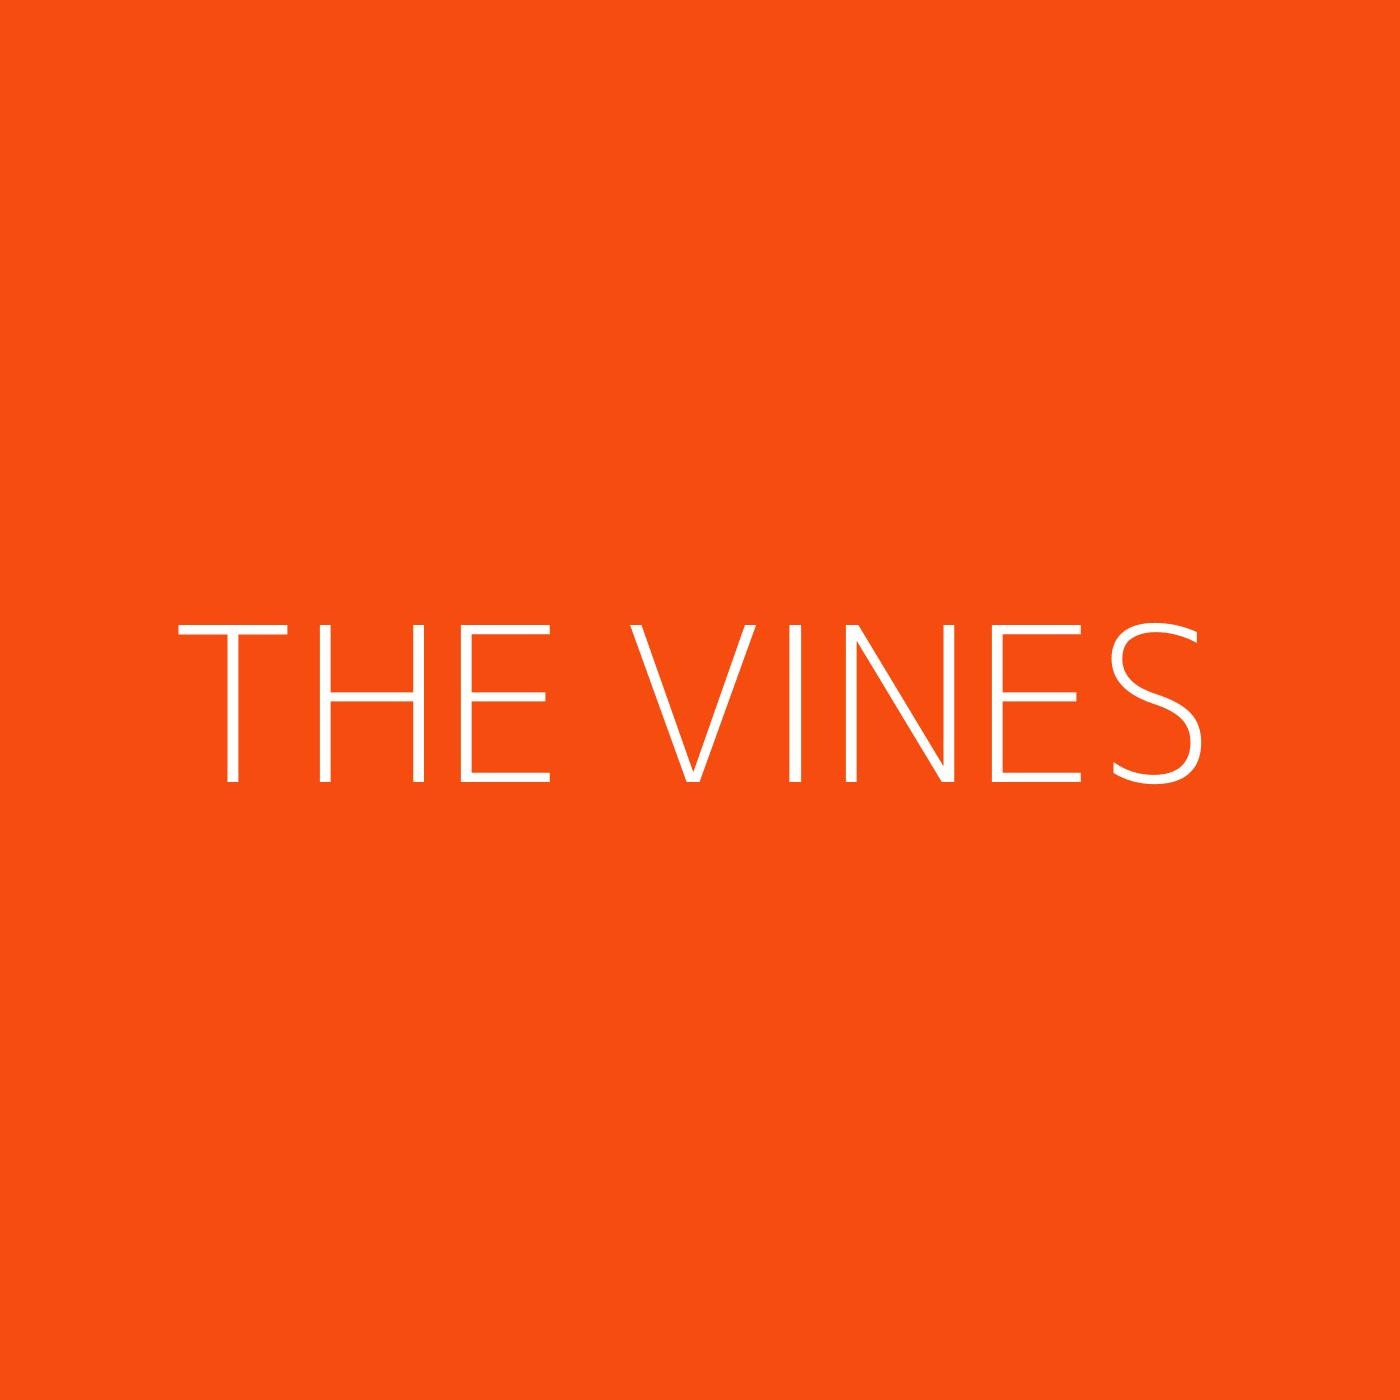 The Vines Playlist Artwork